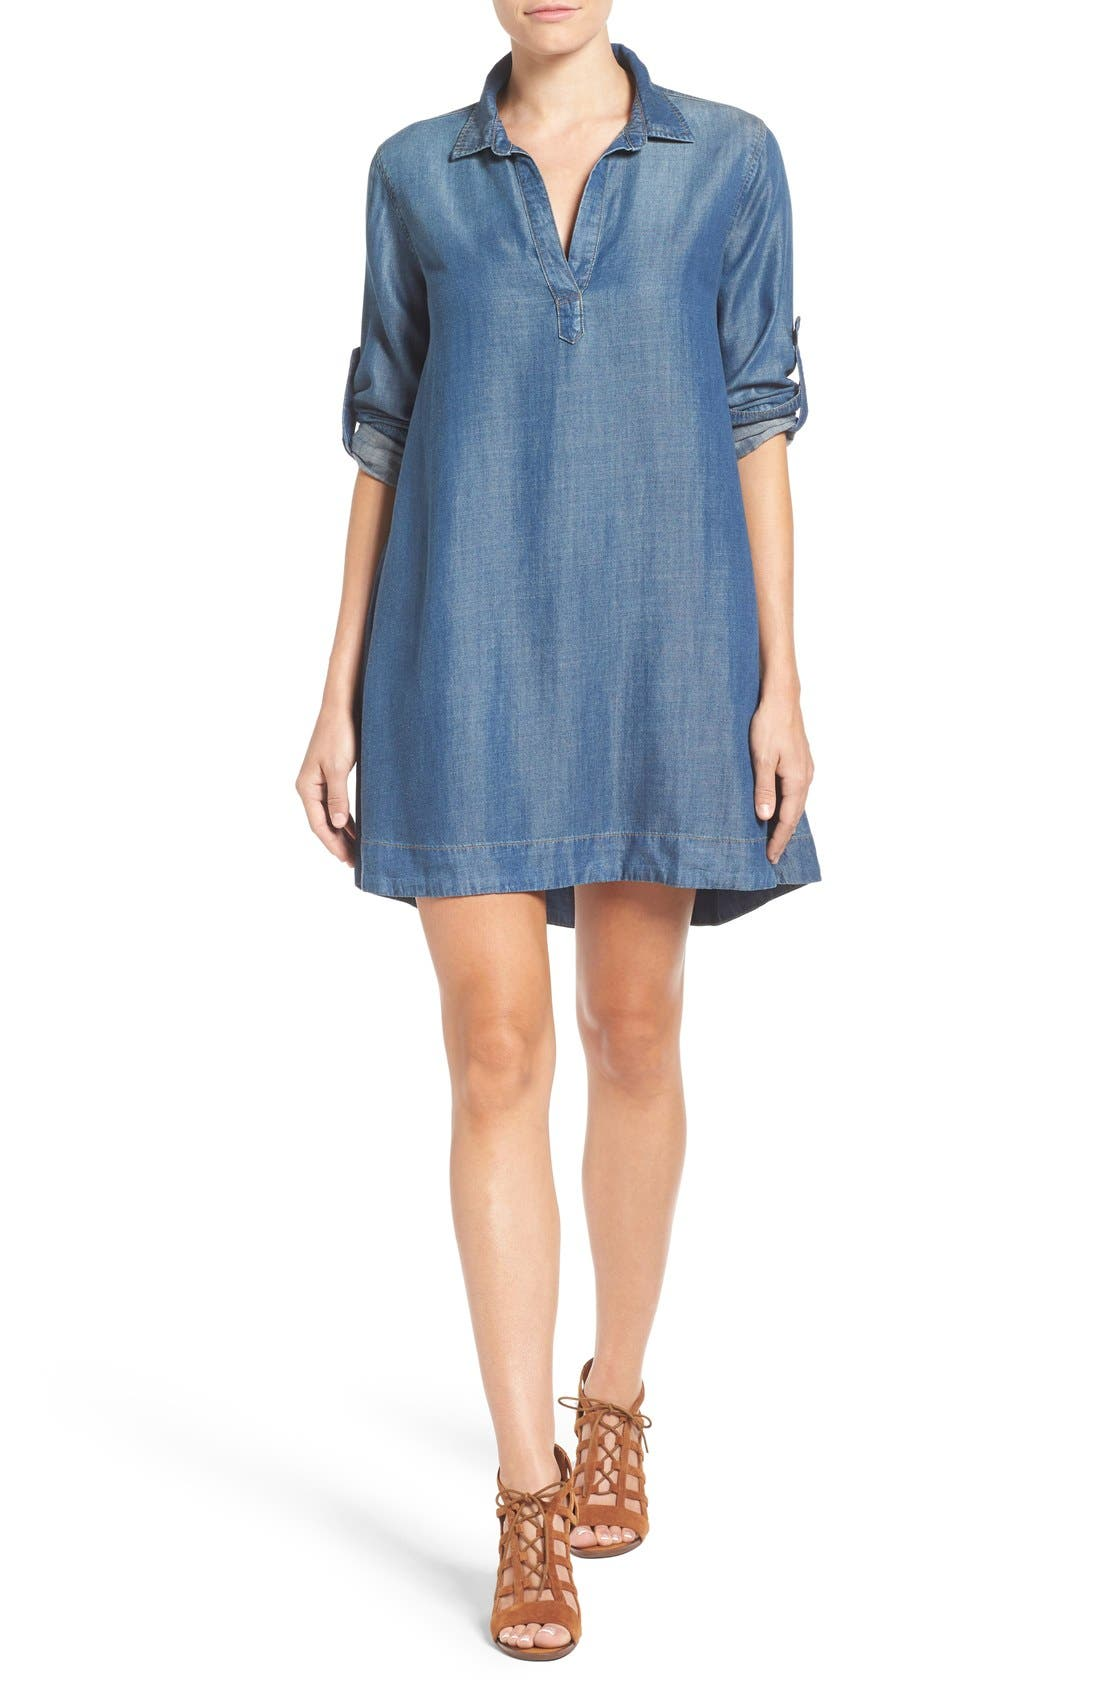 Alternate Image 1 Selected - Side Stitch A-Line Denim Shirtdress